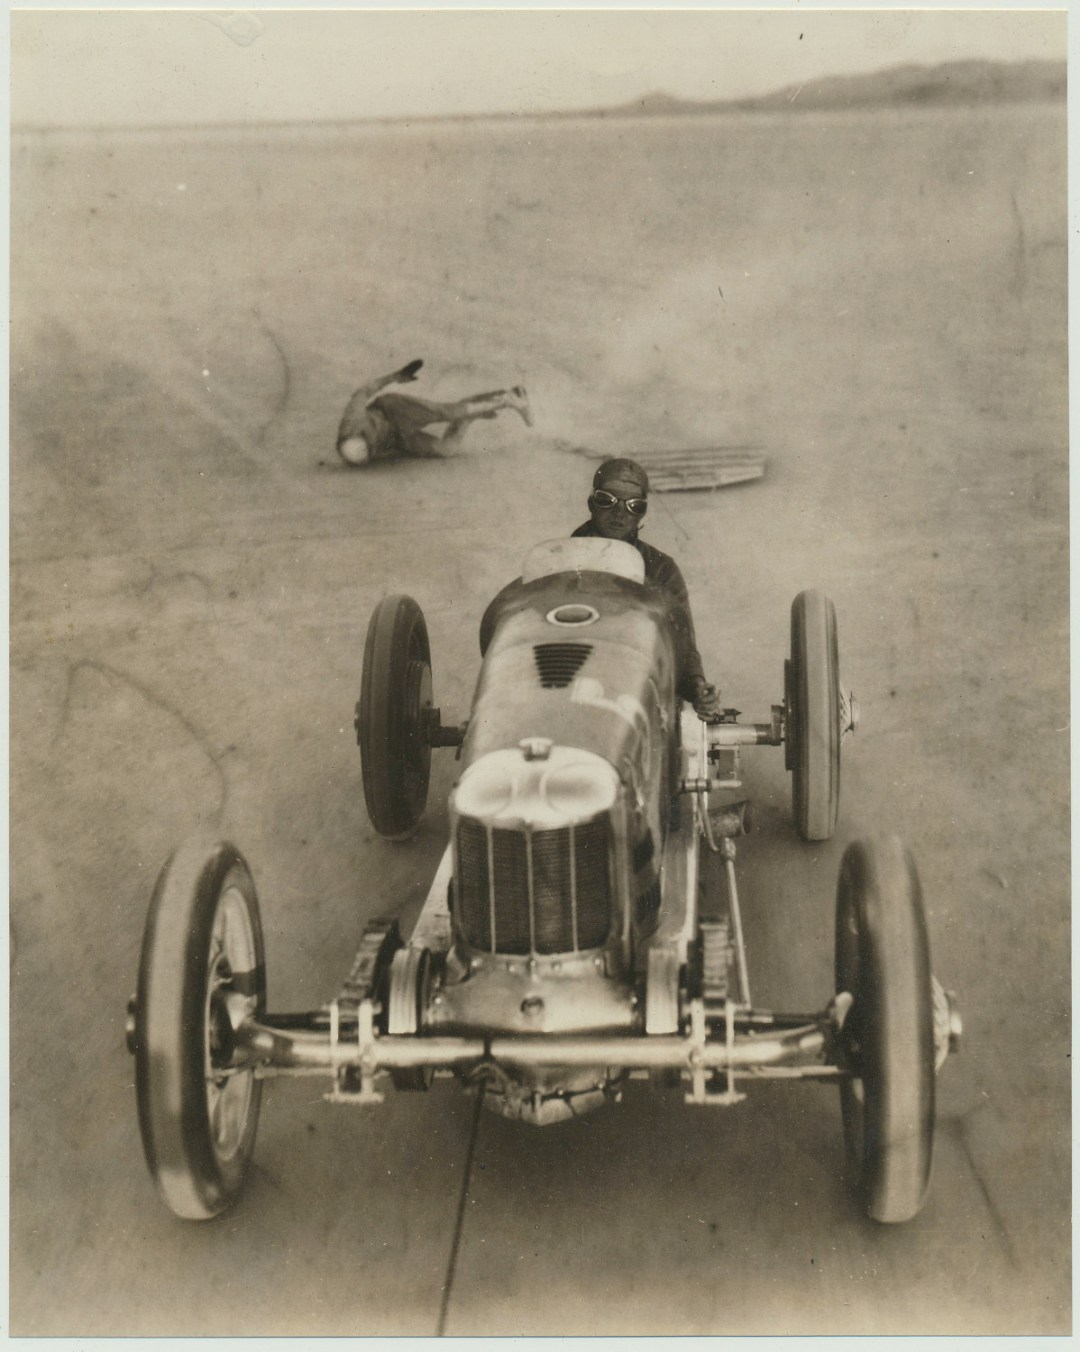 Surfboarding Behind Speedy Race Car :: 1930